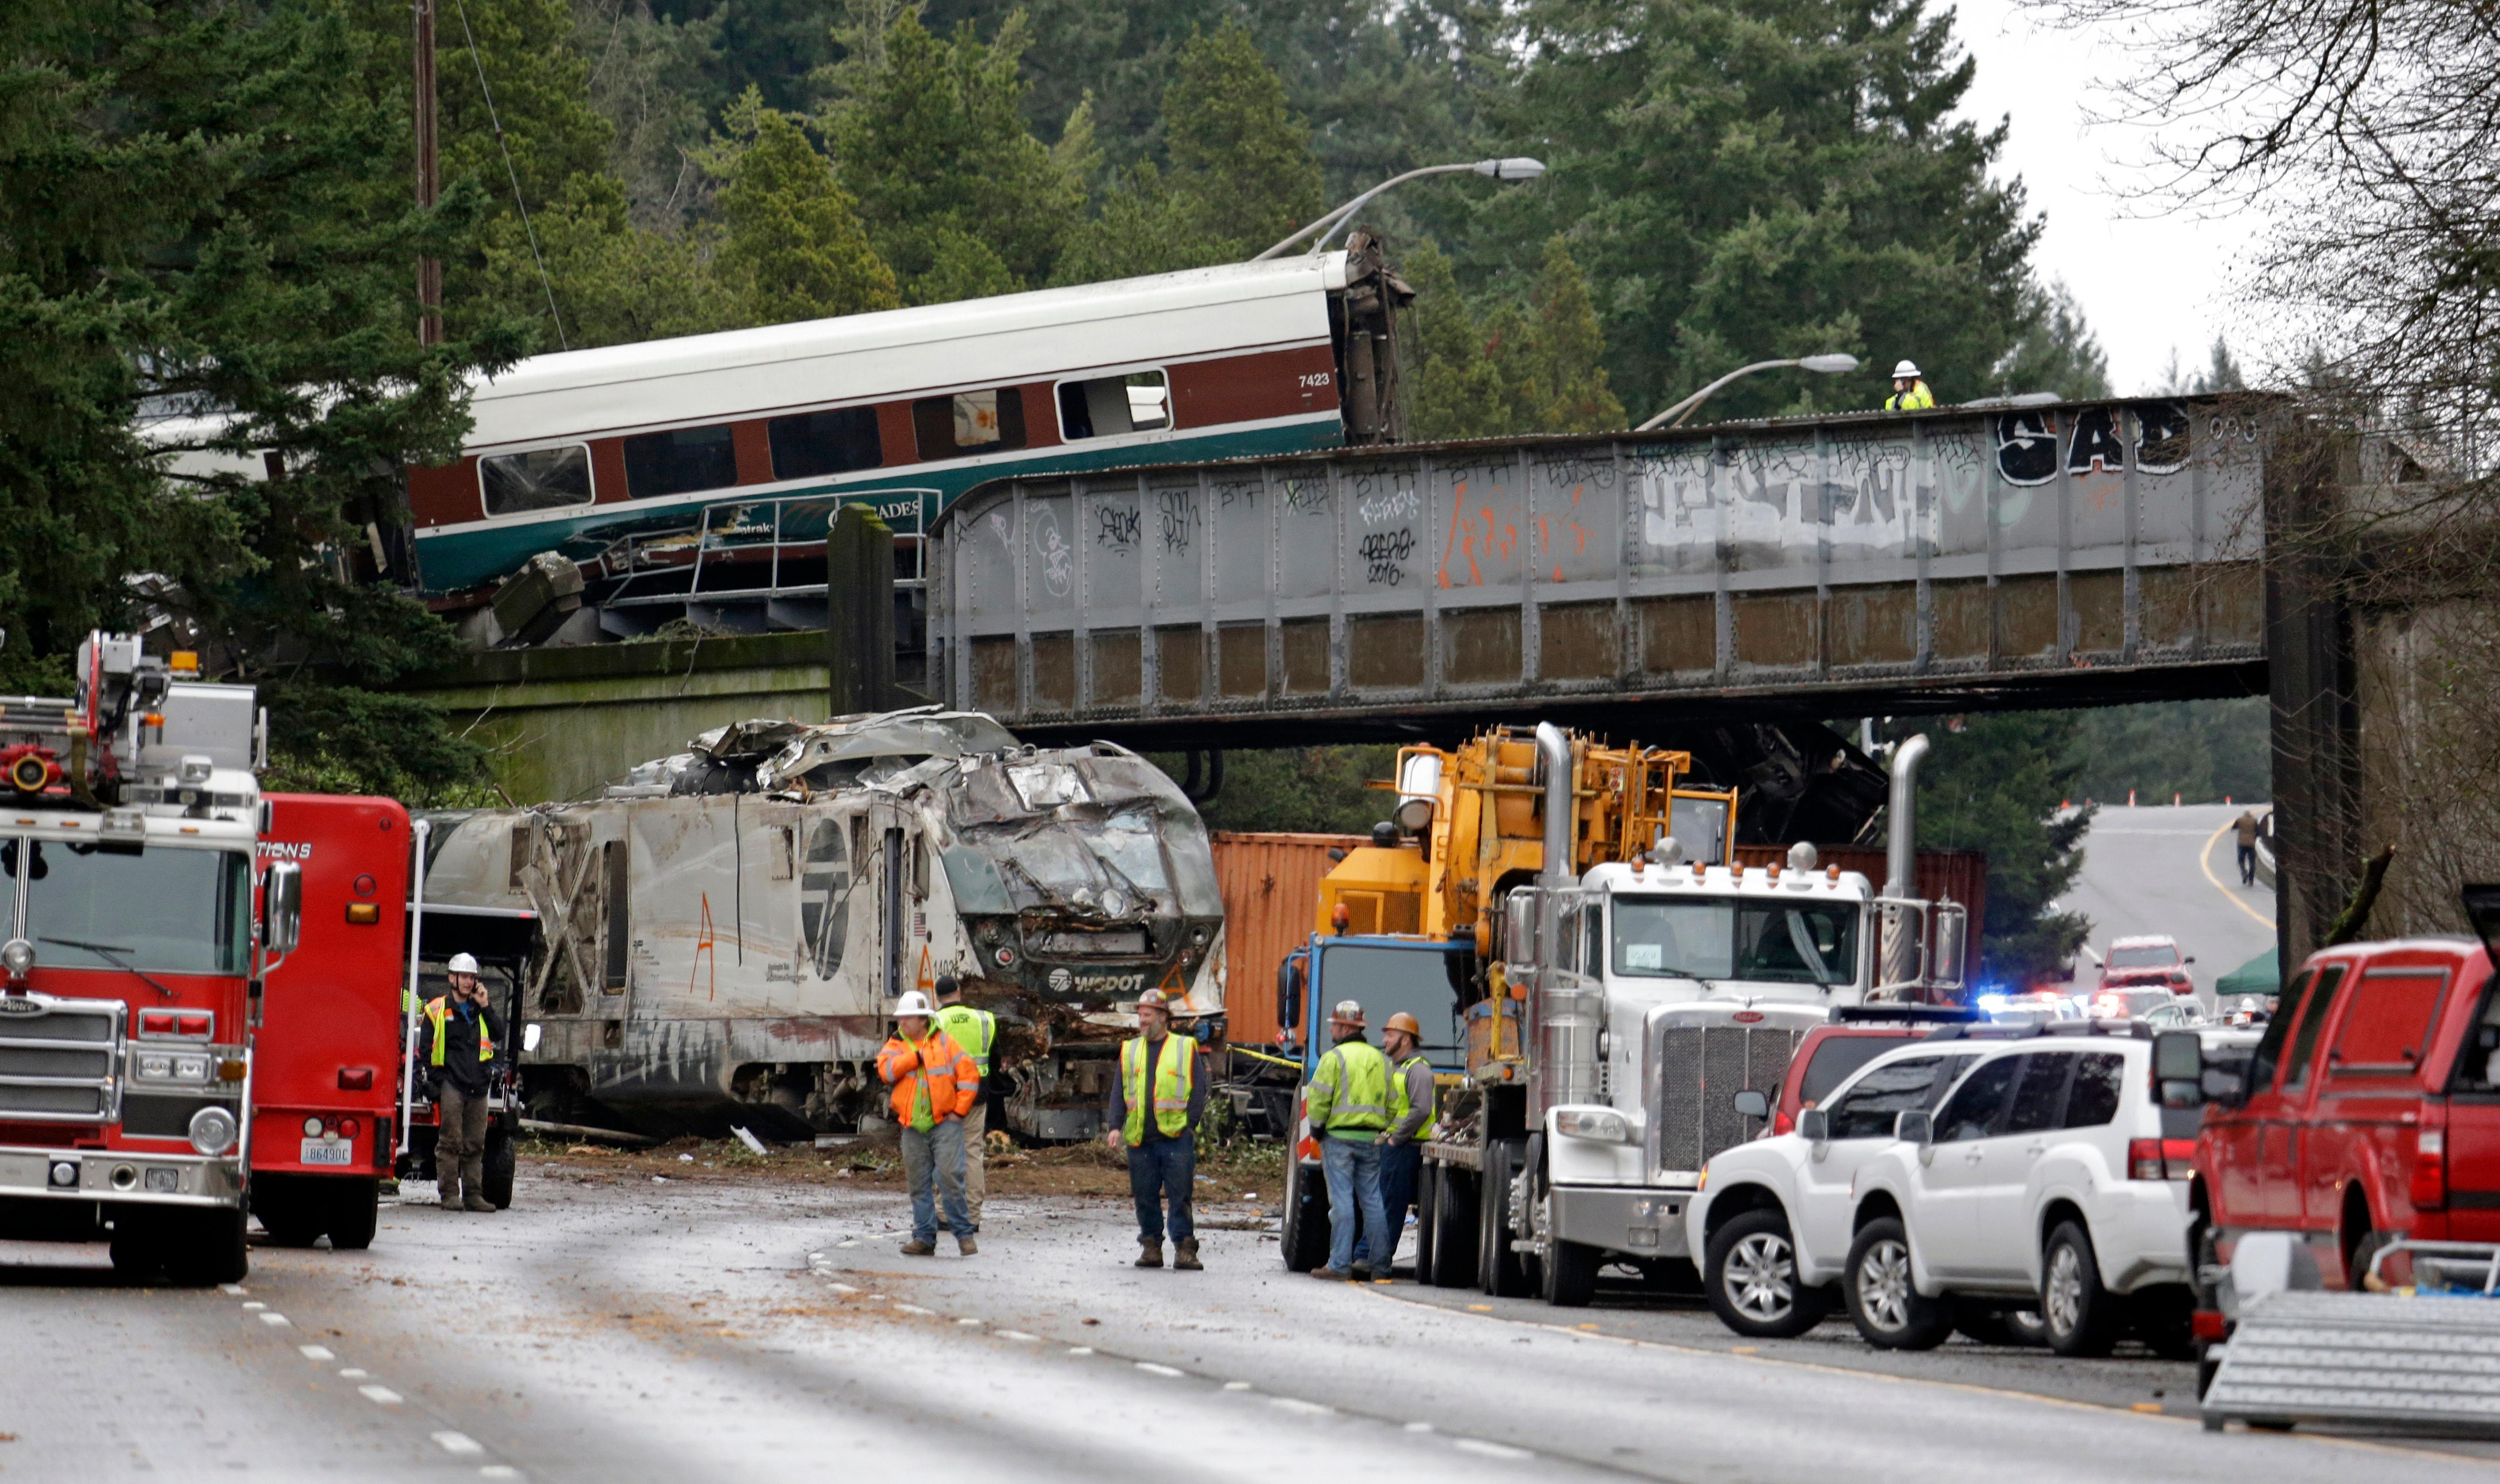 Cars from an Amtrak train lay spilled onto Interstate 5 below as some train cars remain on the tracks above Monday, Dec. 18, 2017, in DuPont, Wash. The Amtrak train making the first-ever run along a faster new route hurtled off the overpass Monday near Tacoma and spilled some of its cars onto the highway below, killing some people, authorities said. (AP Photo/Elaine Thompson)